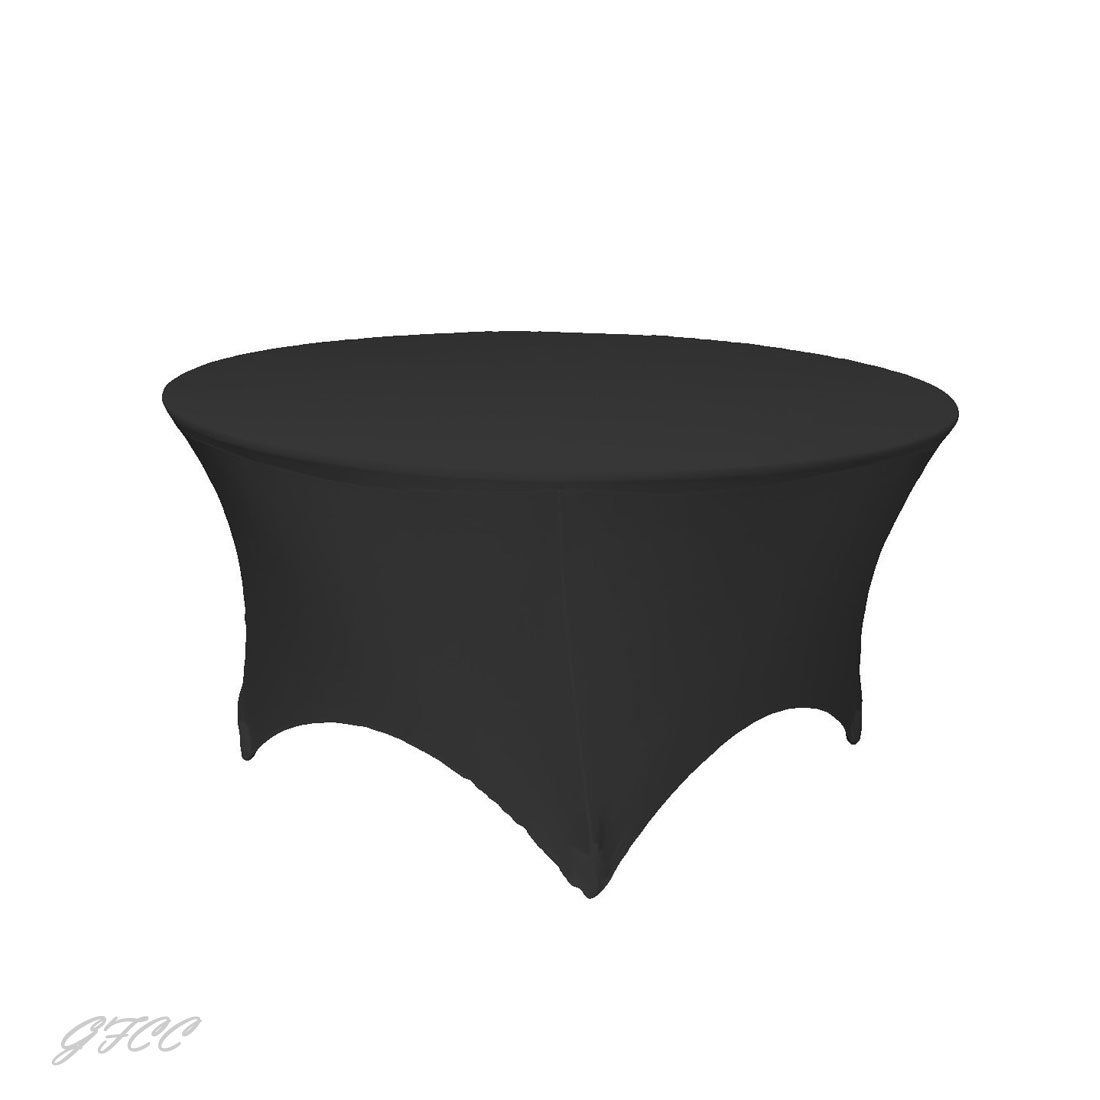 Amazon Com Gfcc 3ft Black Round Stretch Tablecloth Home Kitchen Table Cloth Table Covers Tablecloths For Sale